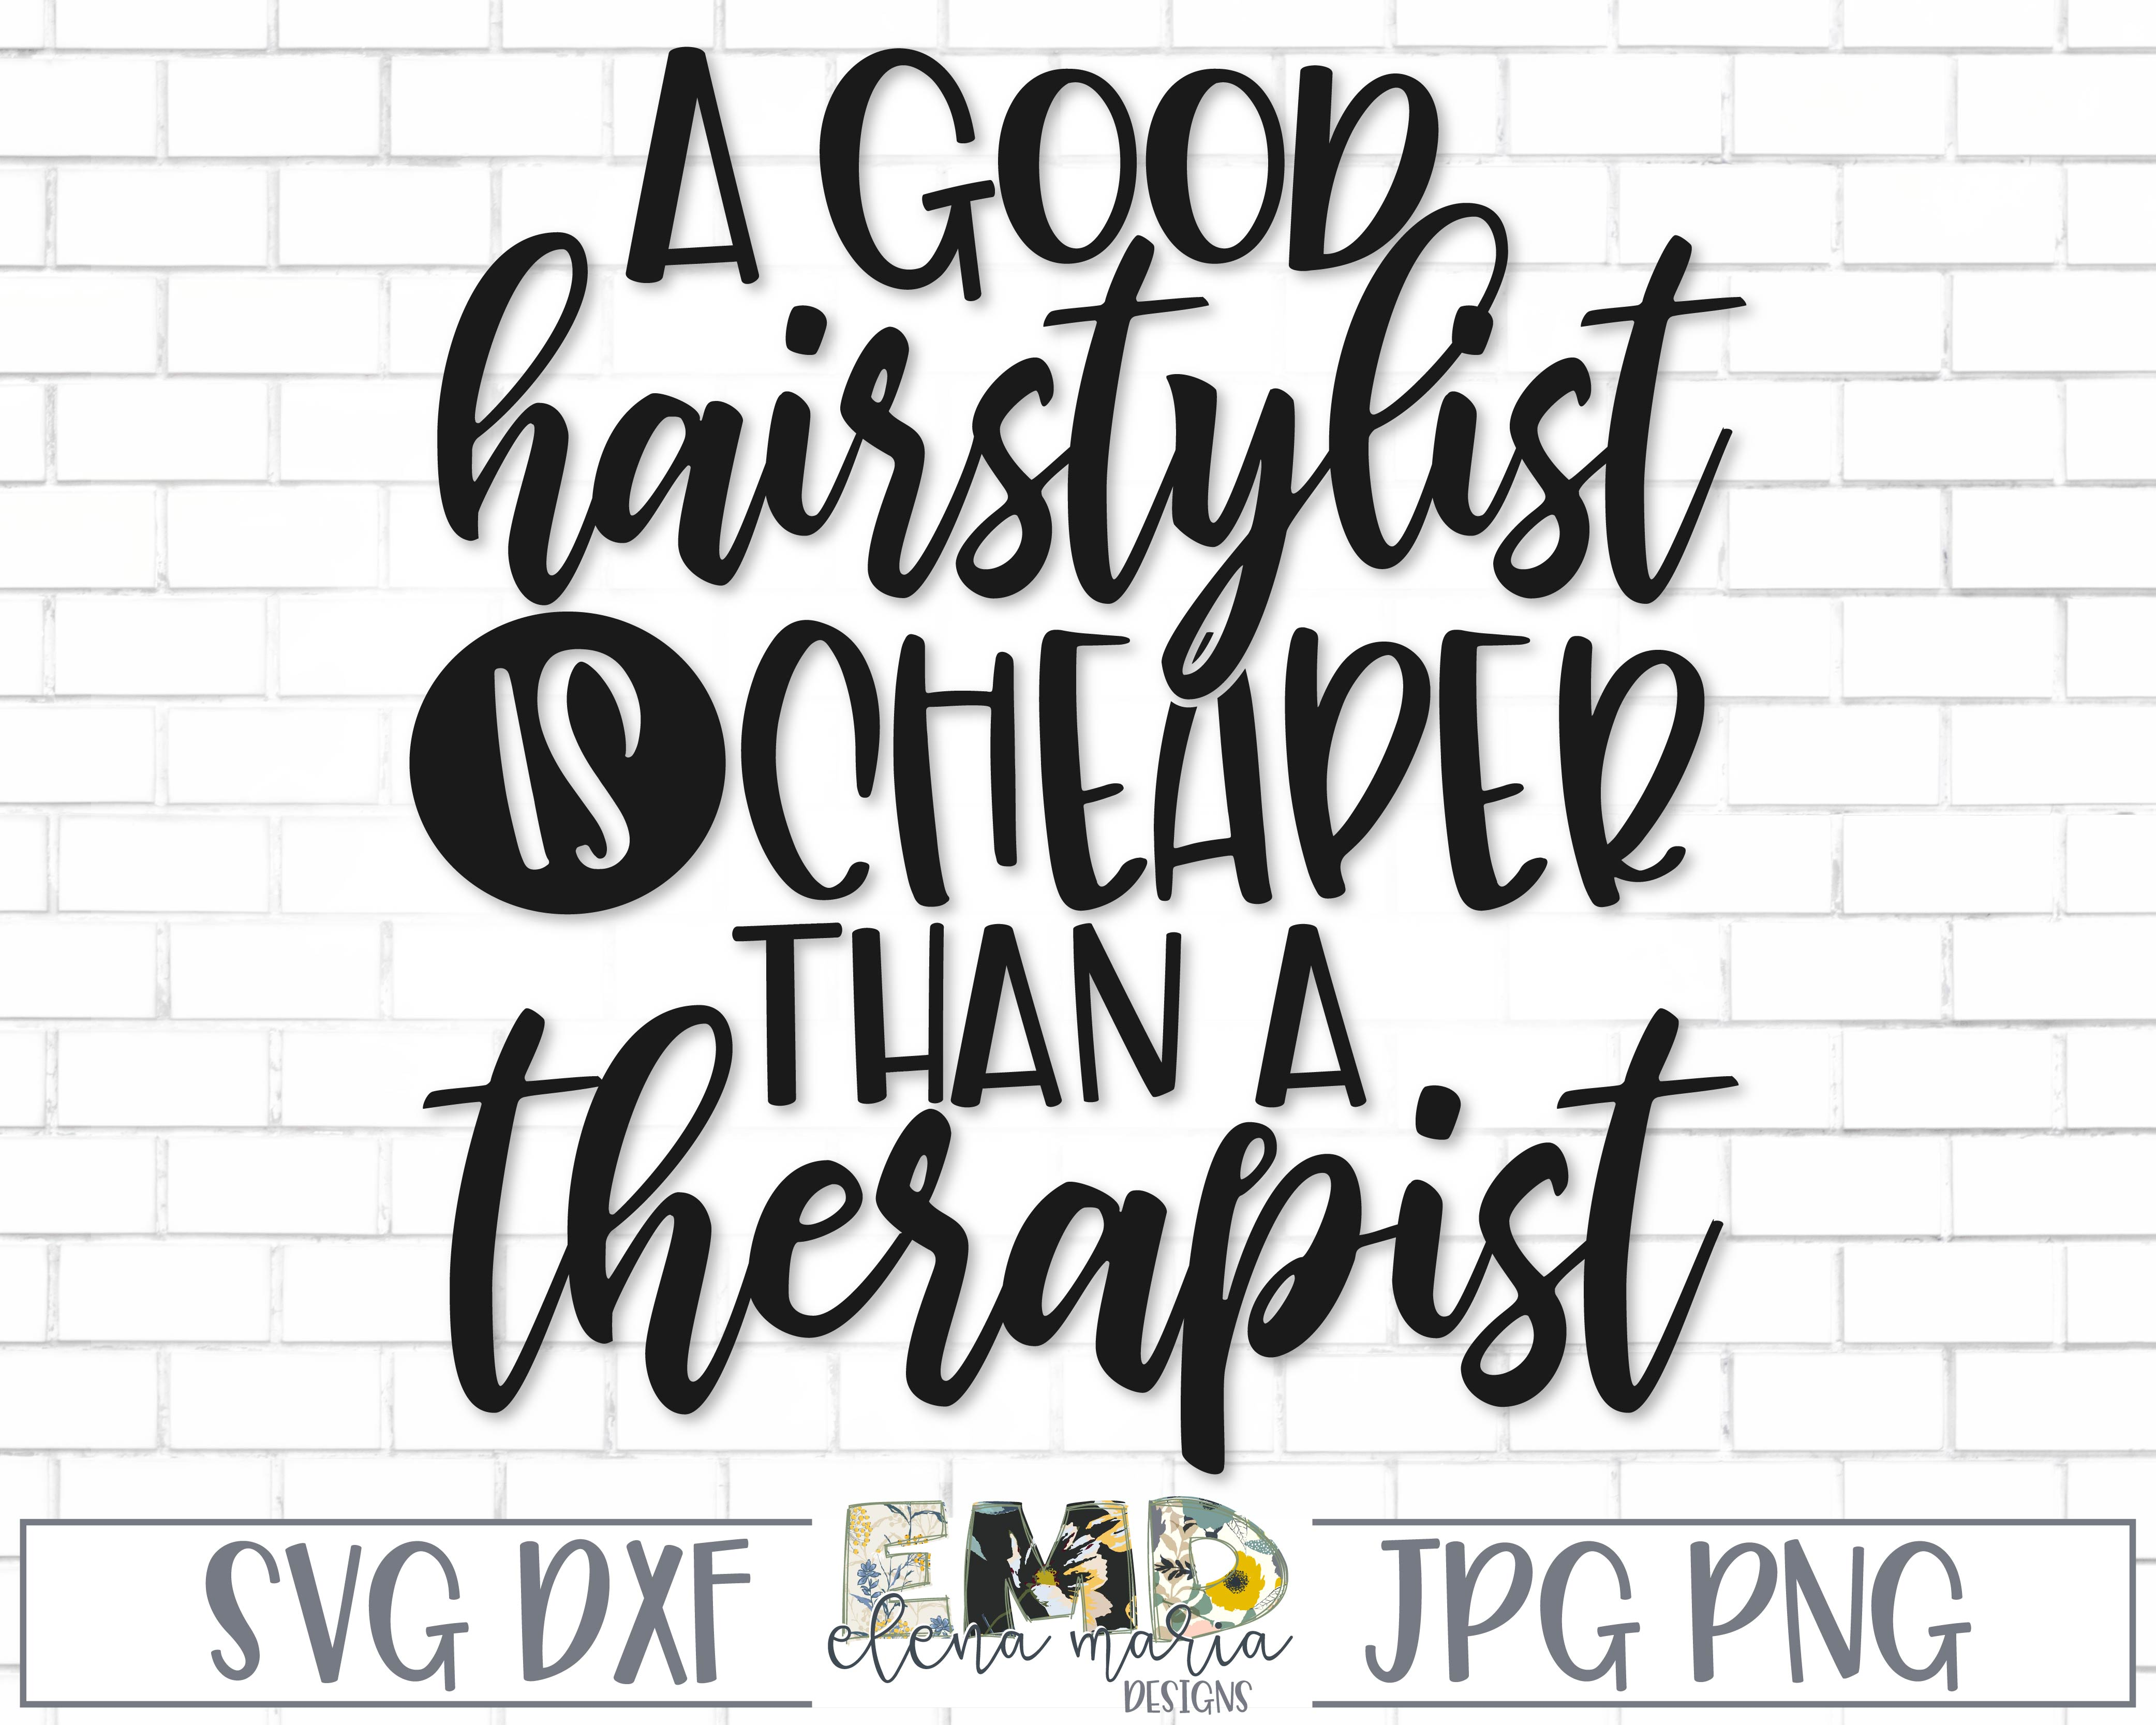 hair stylist svg #274, Download drawings